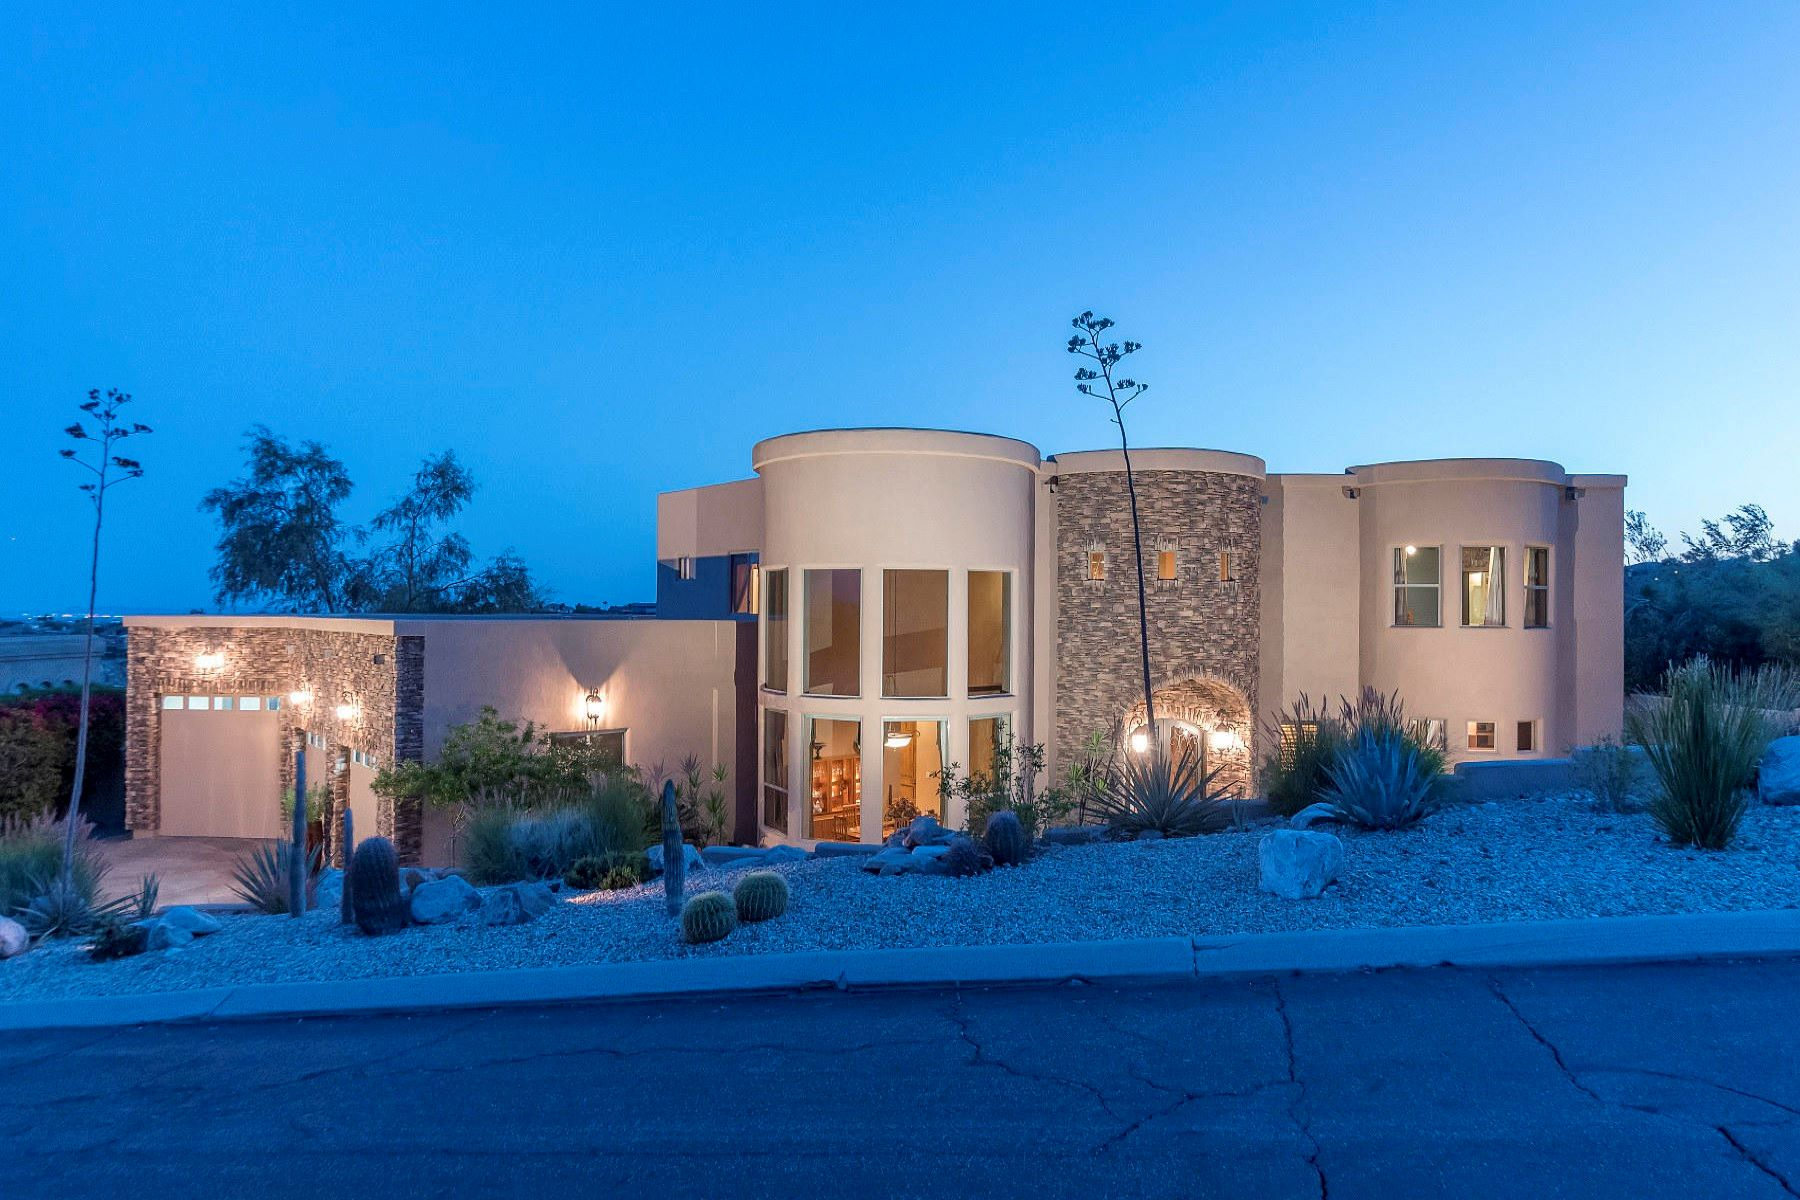 single family homes for Active at Beautifully Built Custom Residence In Fountain Hills 15119 E Sage Dr Fountain Hills, Arizona 85268 United States